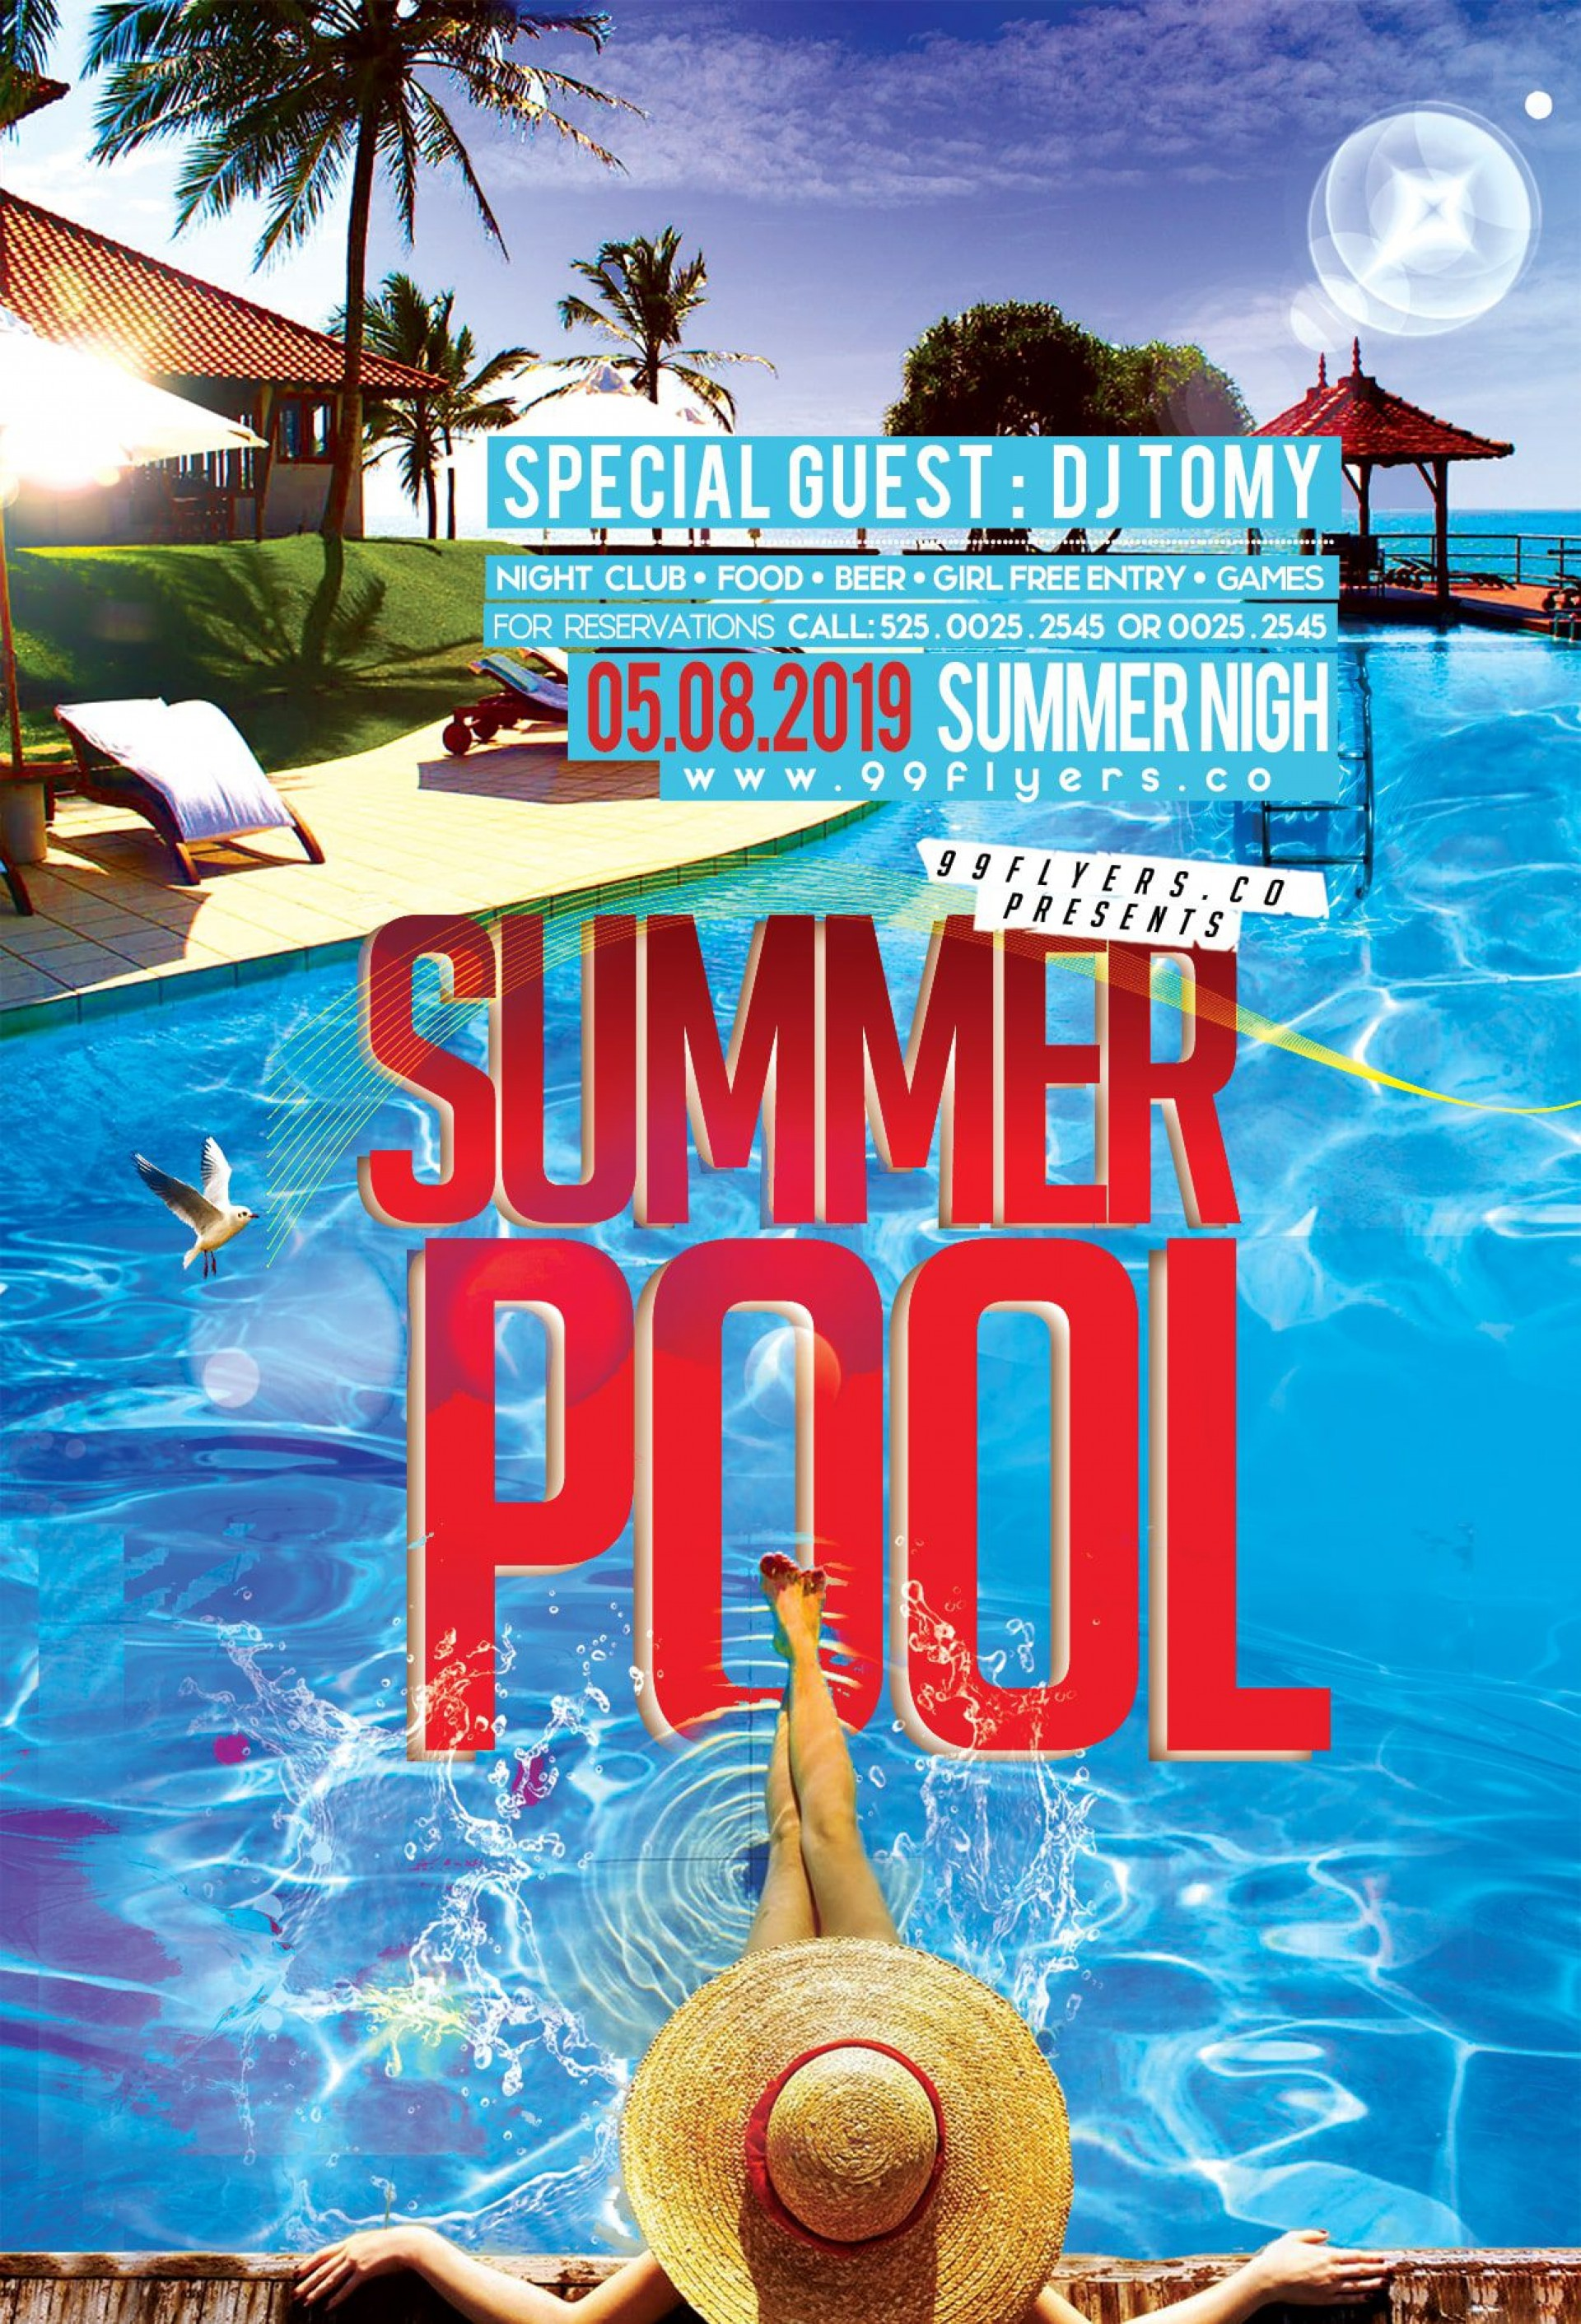 006 Exceptional Pool Party Flyer Template Free Sample  Photoshop Psd1920